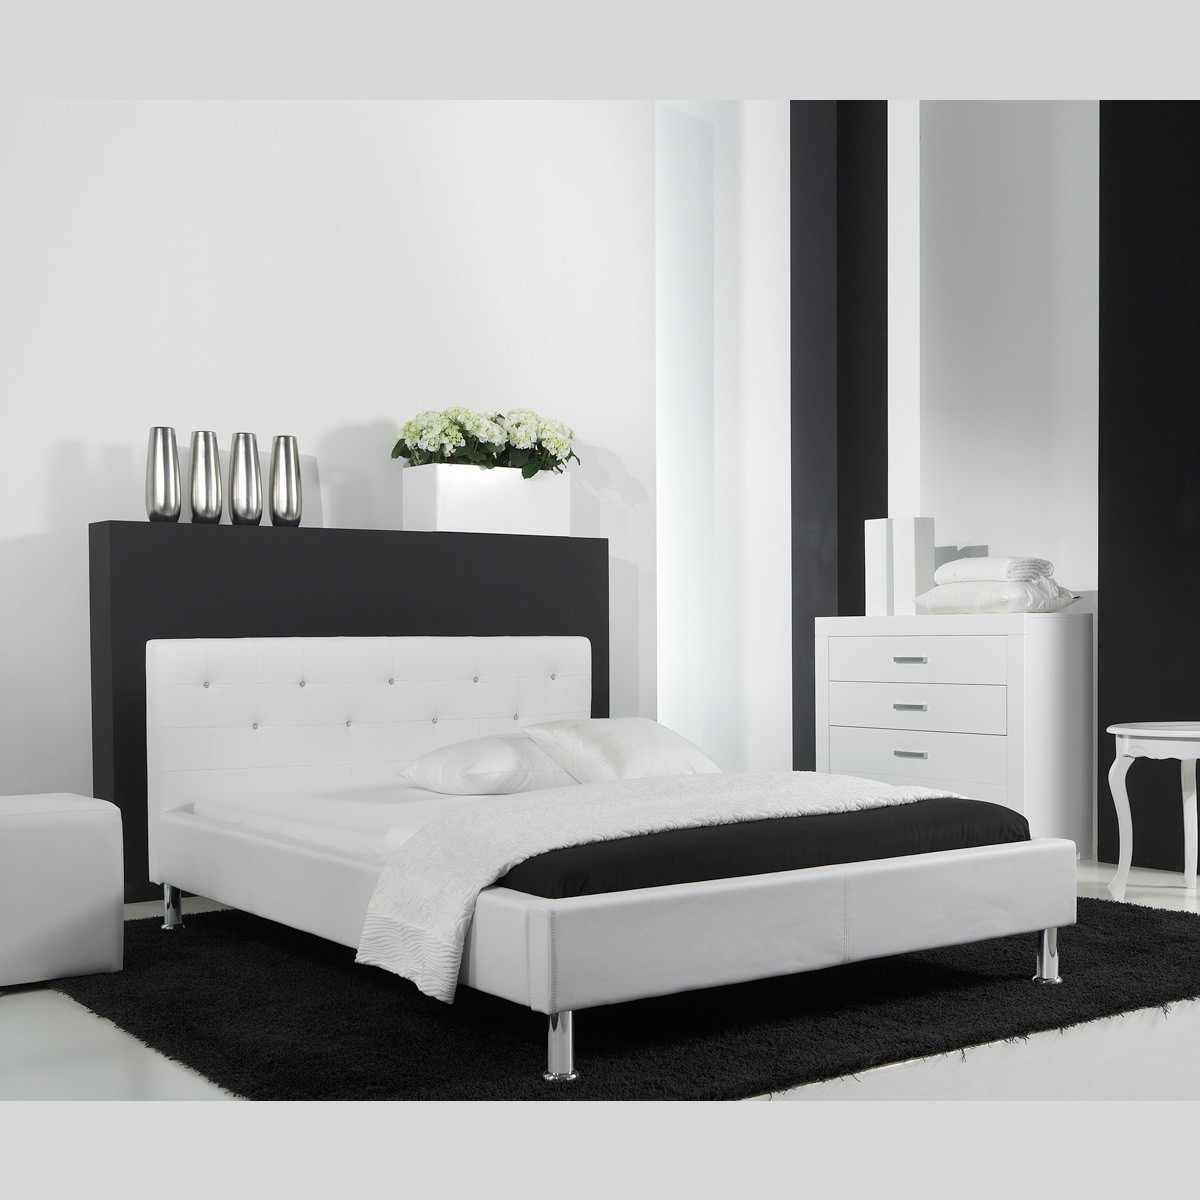 polsterbett kunstlederbett bett 140x200 in wei mit swarovski steinen ebay. Black Bedroom Furniture Sets. Home Design Ideas